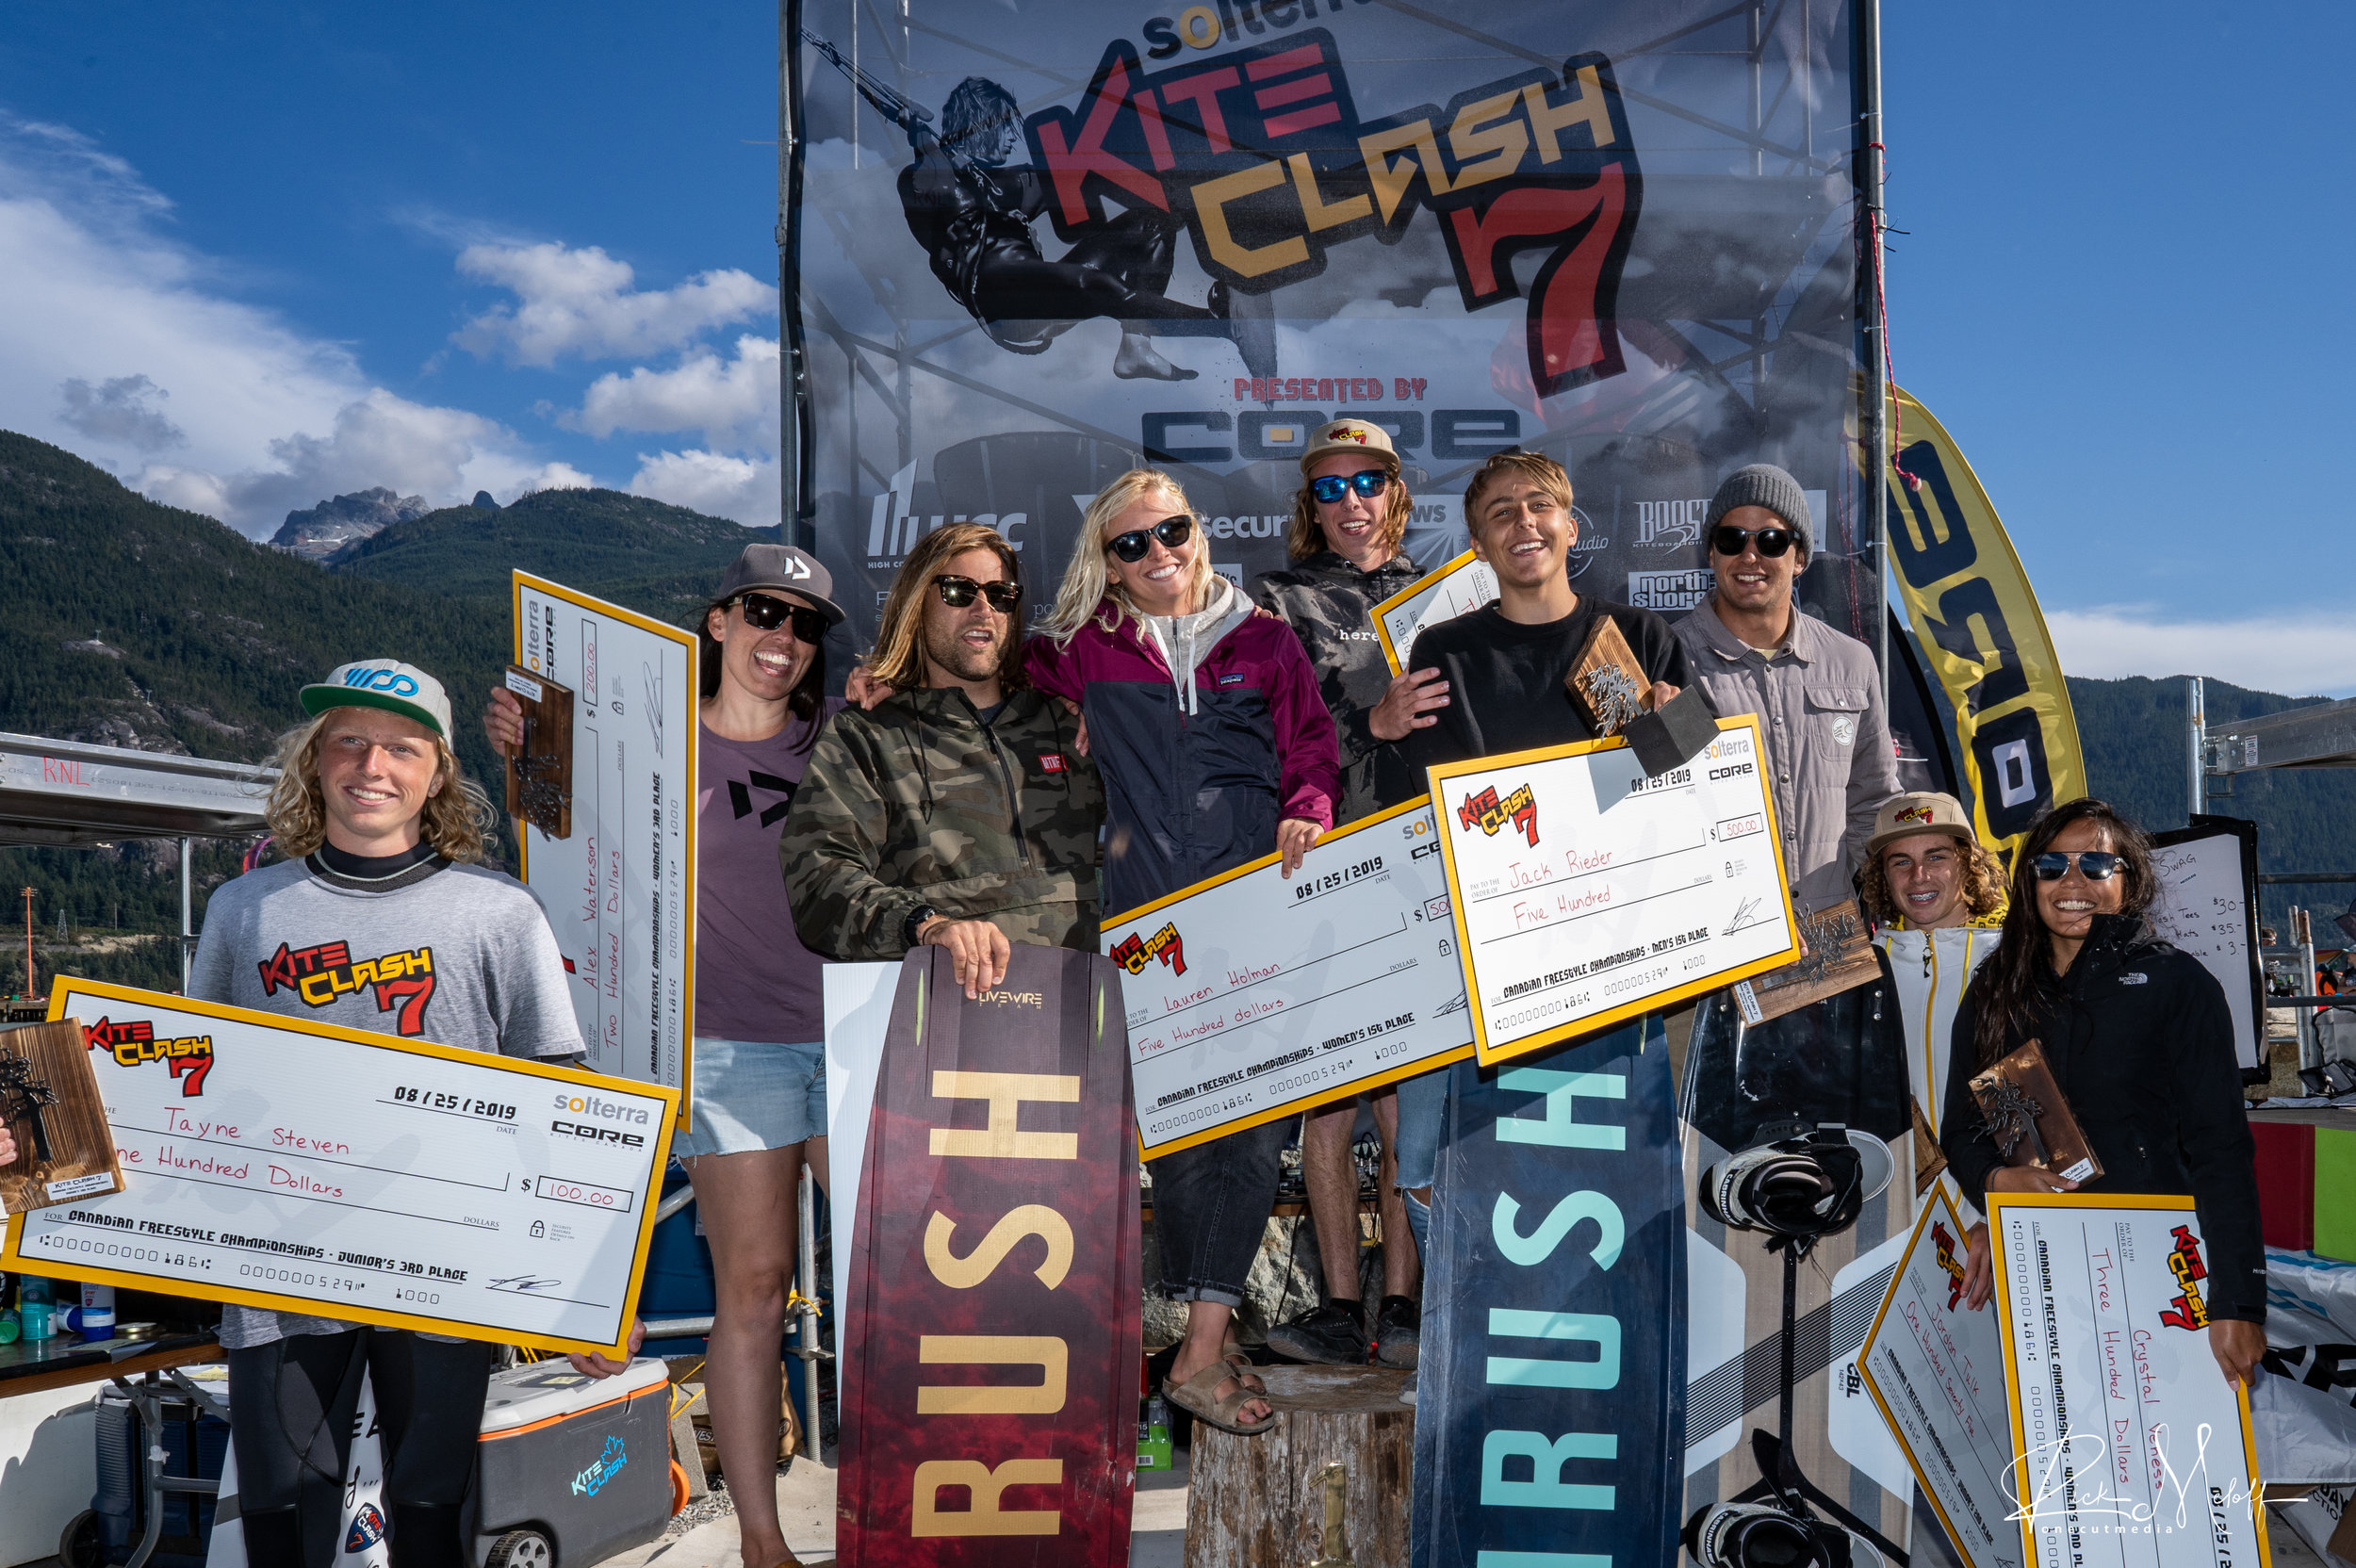 The 2019 Kite Clash 7 Canadian National Freestyle Champions